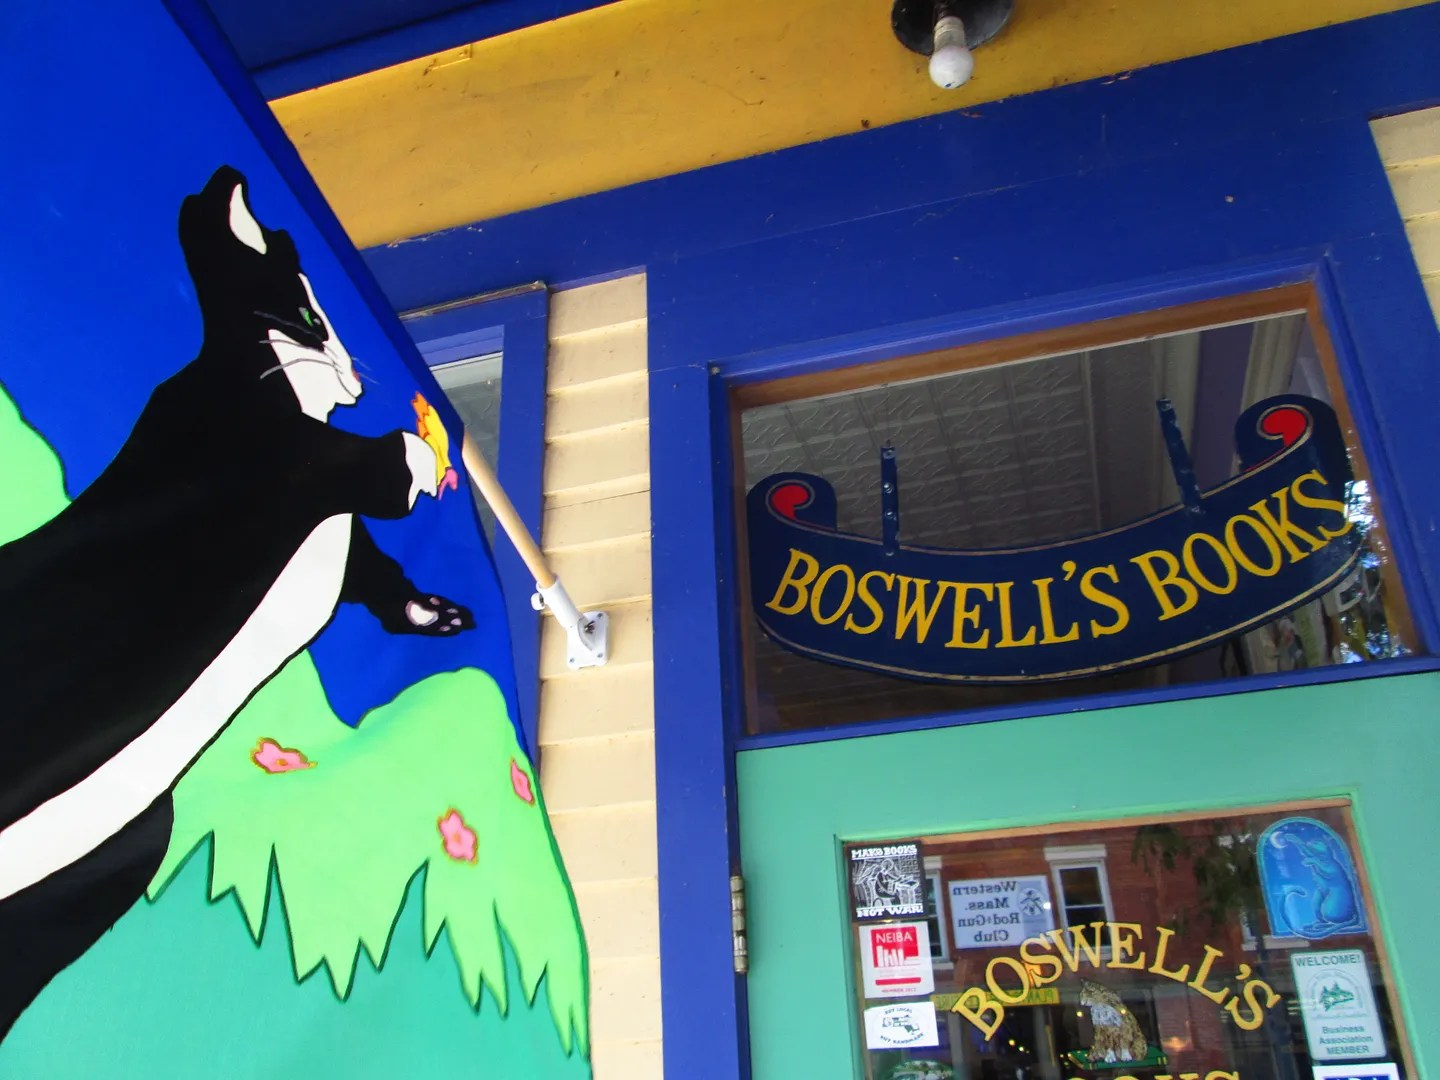 boswell's books front door and flag with picture of cat